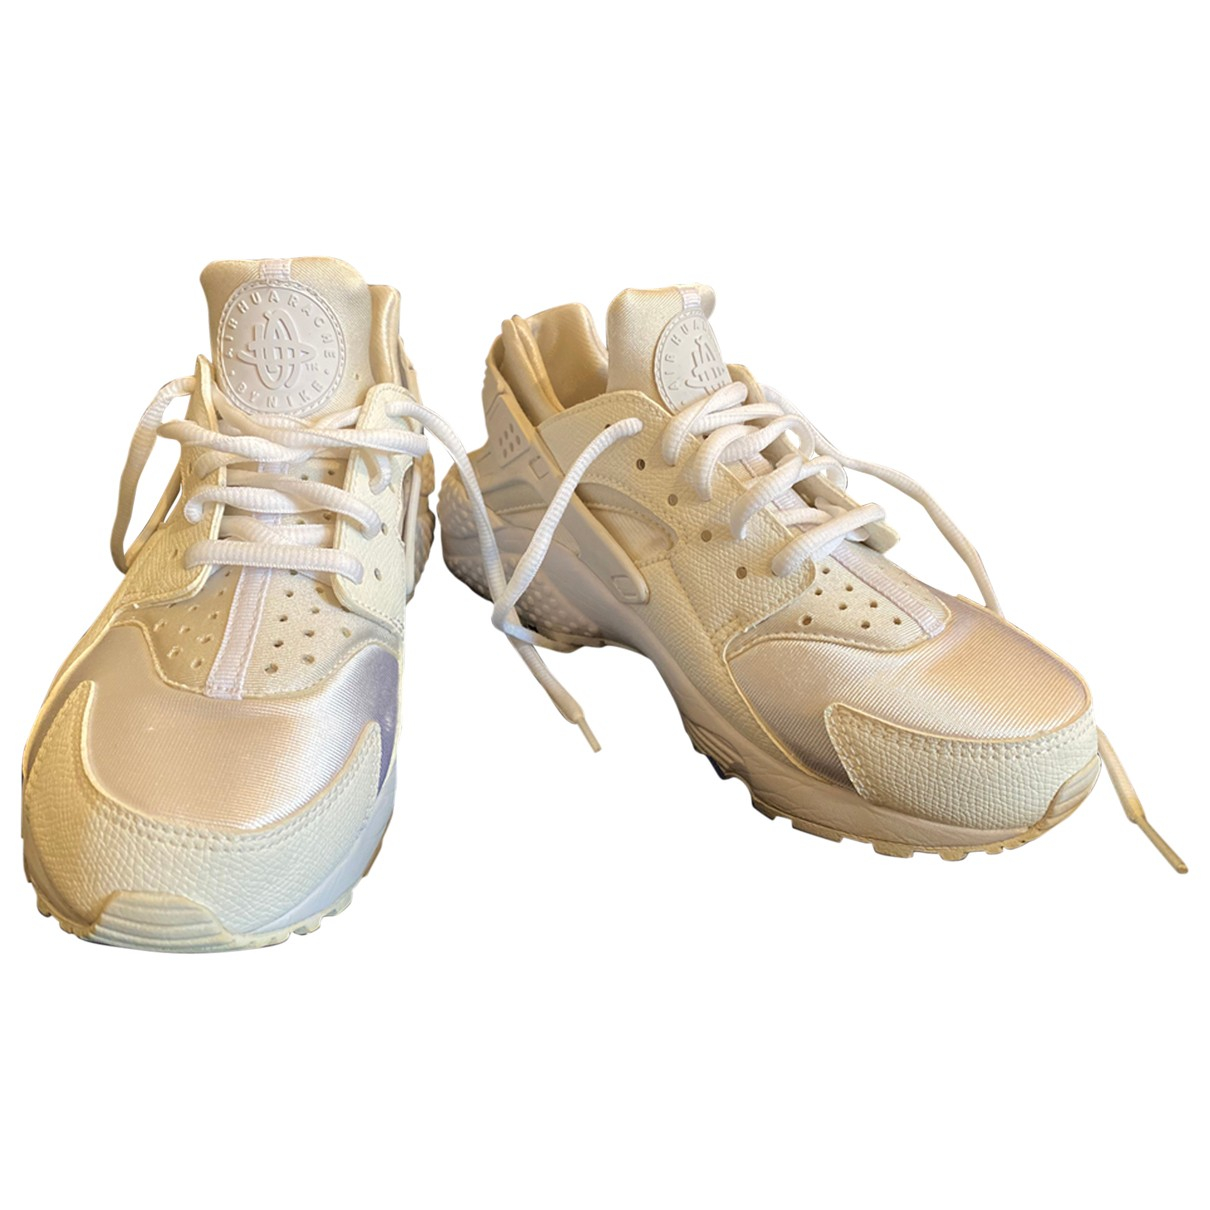 Nike Huarache White Cloth Trainers for Women 38 EU